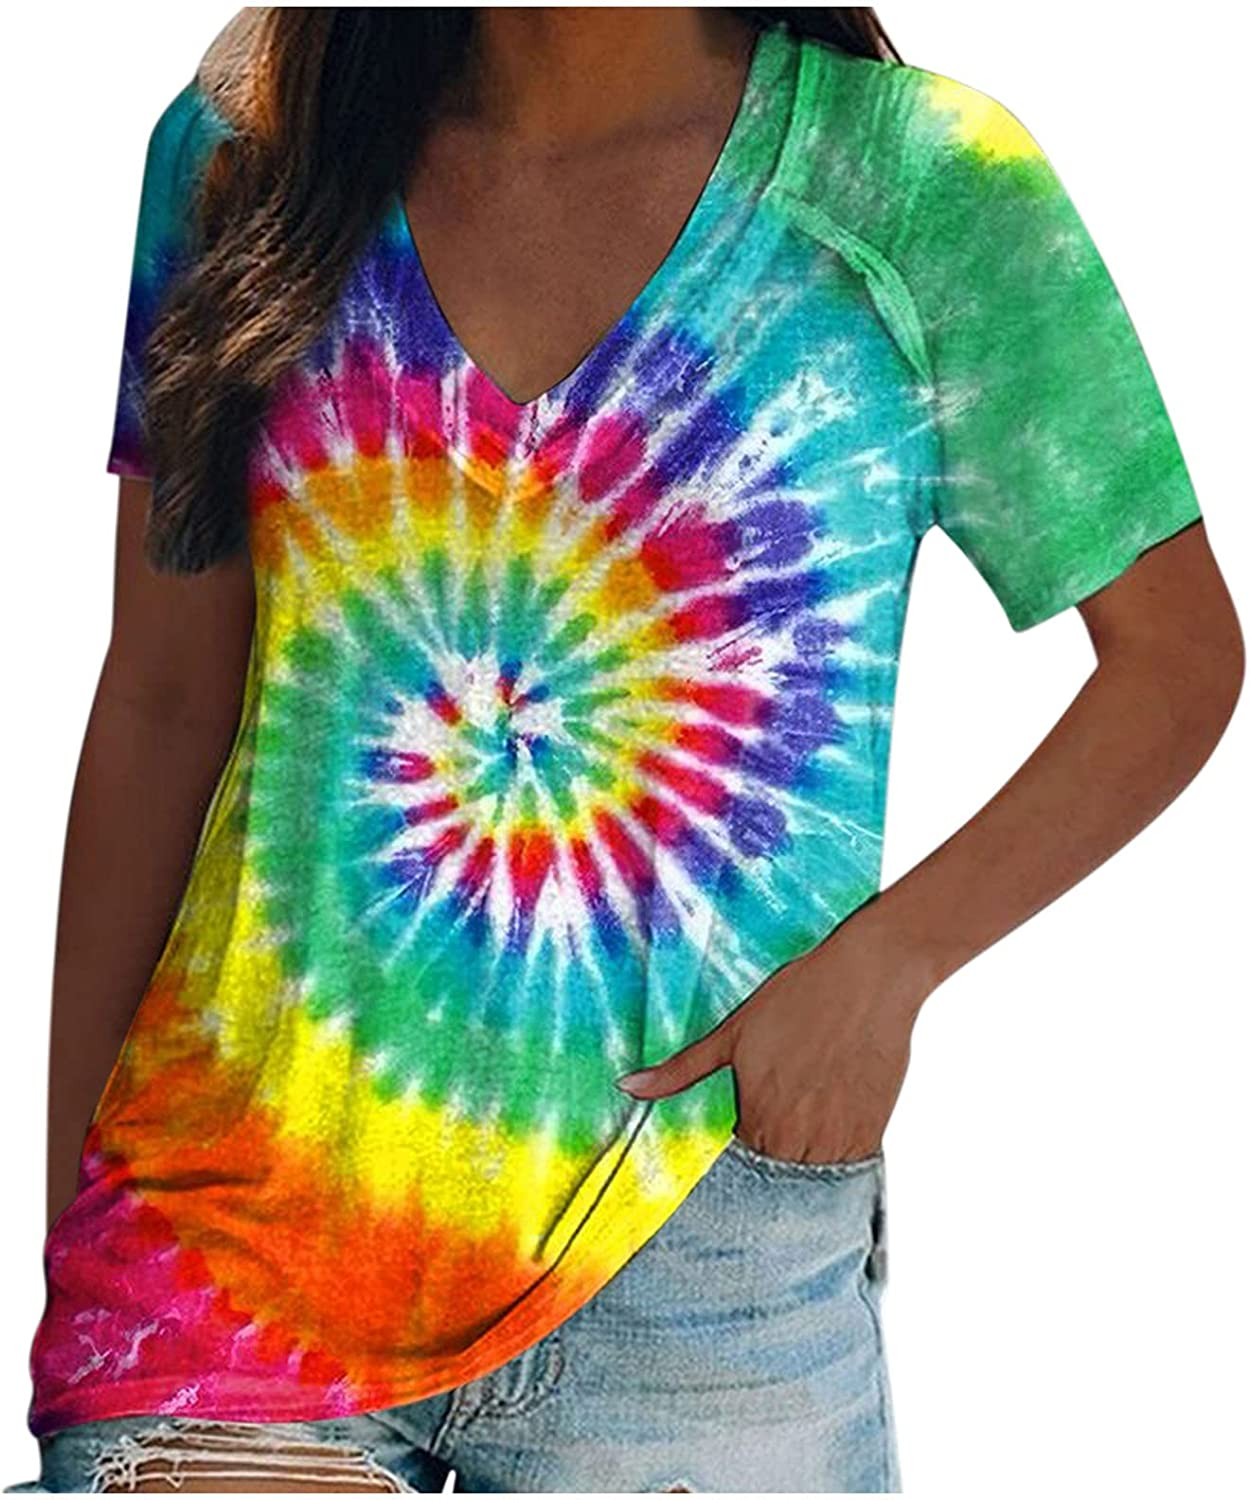 Forwelly Women's Tie Dye T Shirt 2021 Fashion Summer Tee Casual Loose Short Sleeve V Neck Tunic Top Blouse